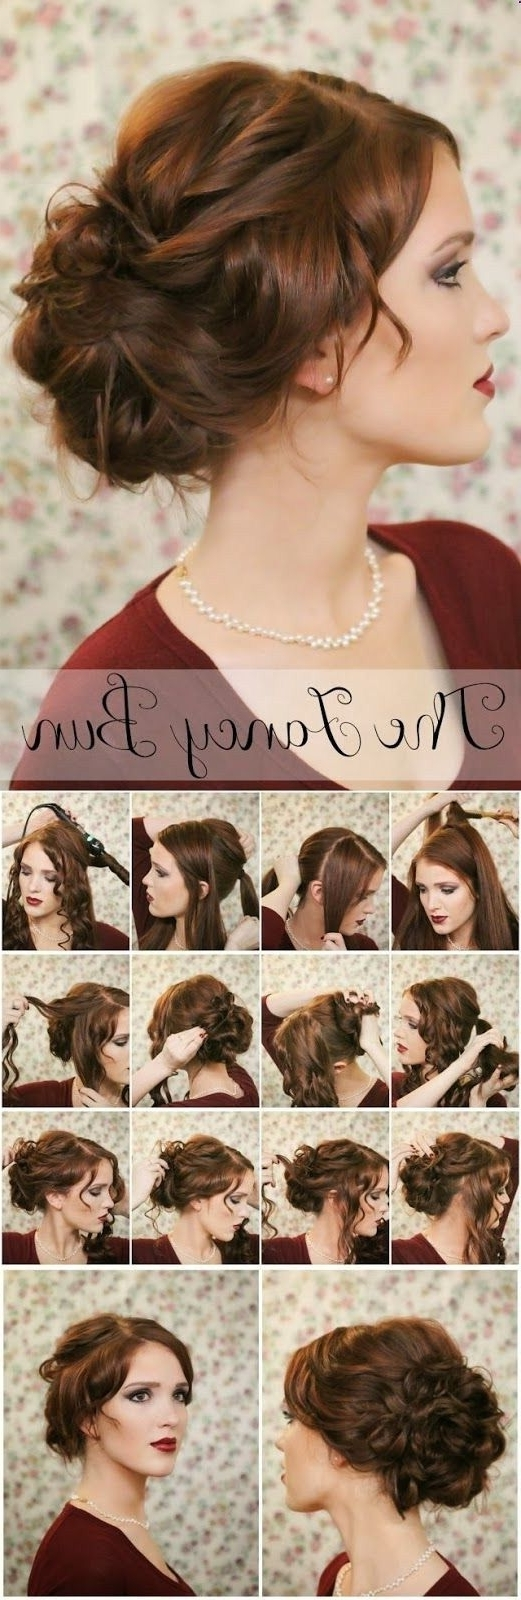 16 Pretty And Chic Updos For Medium Length Hair – Pretty Designs Within Well Known Simple Wedding Hairstyles For Medium Length Hair (View 1 of 15)